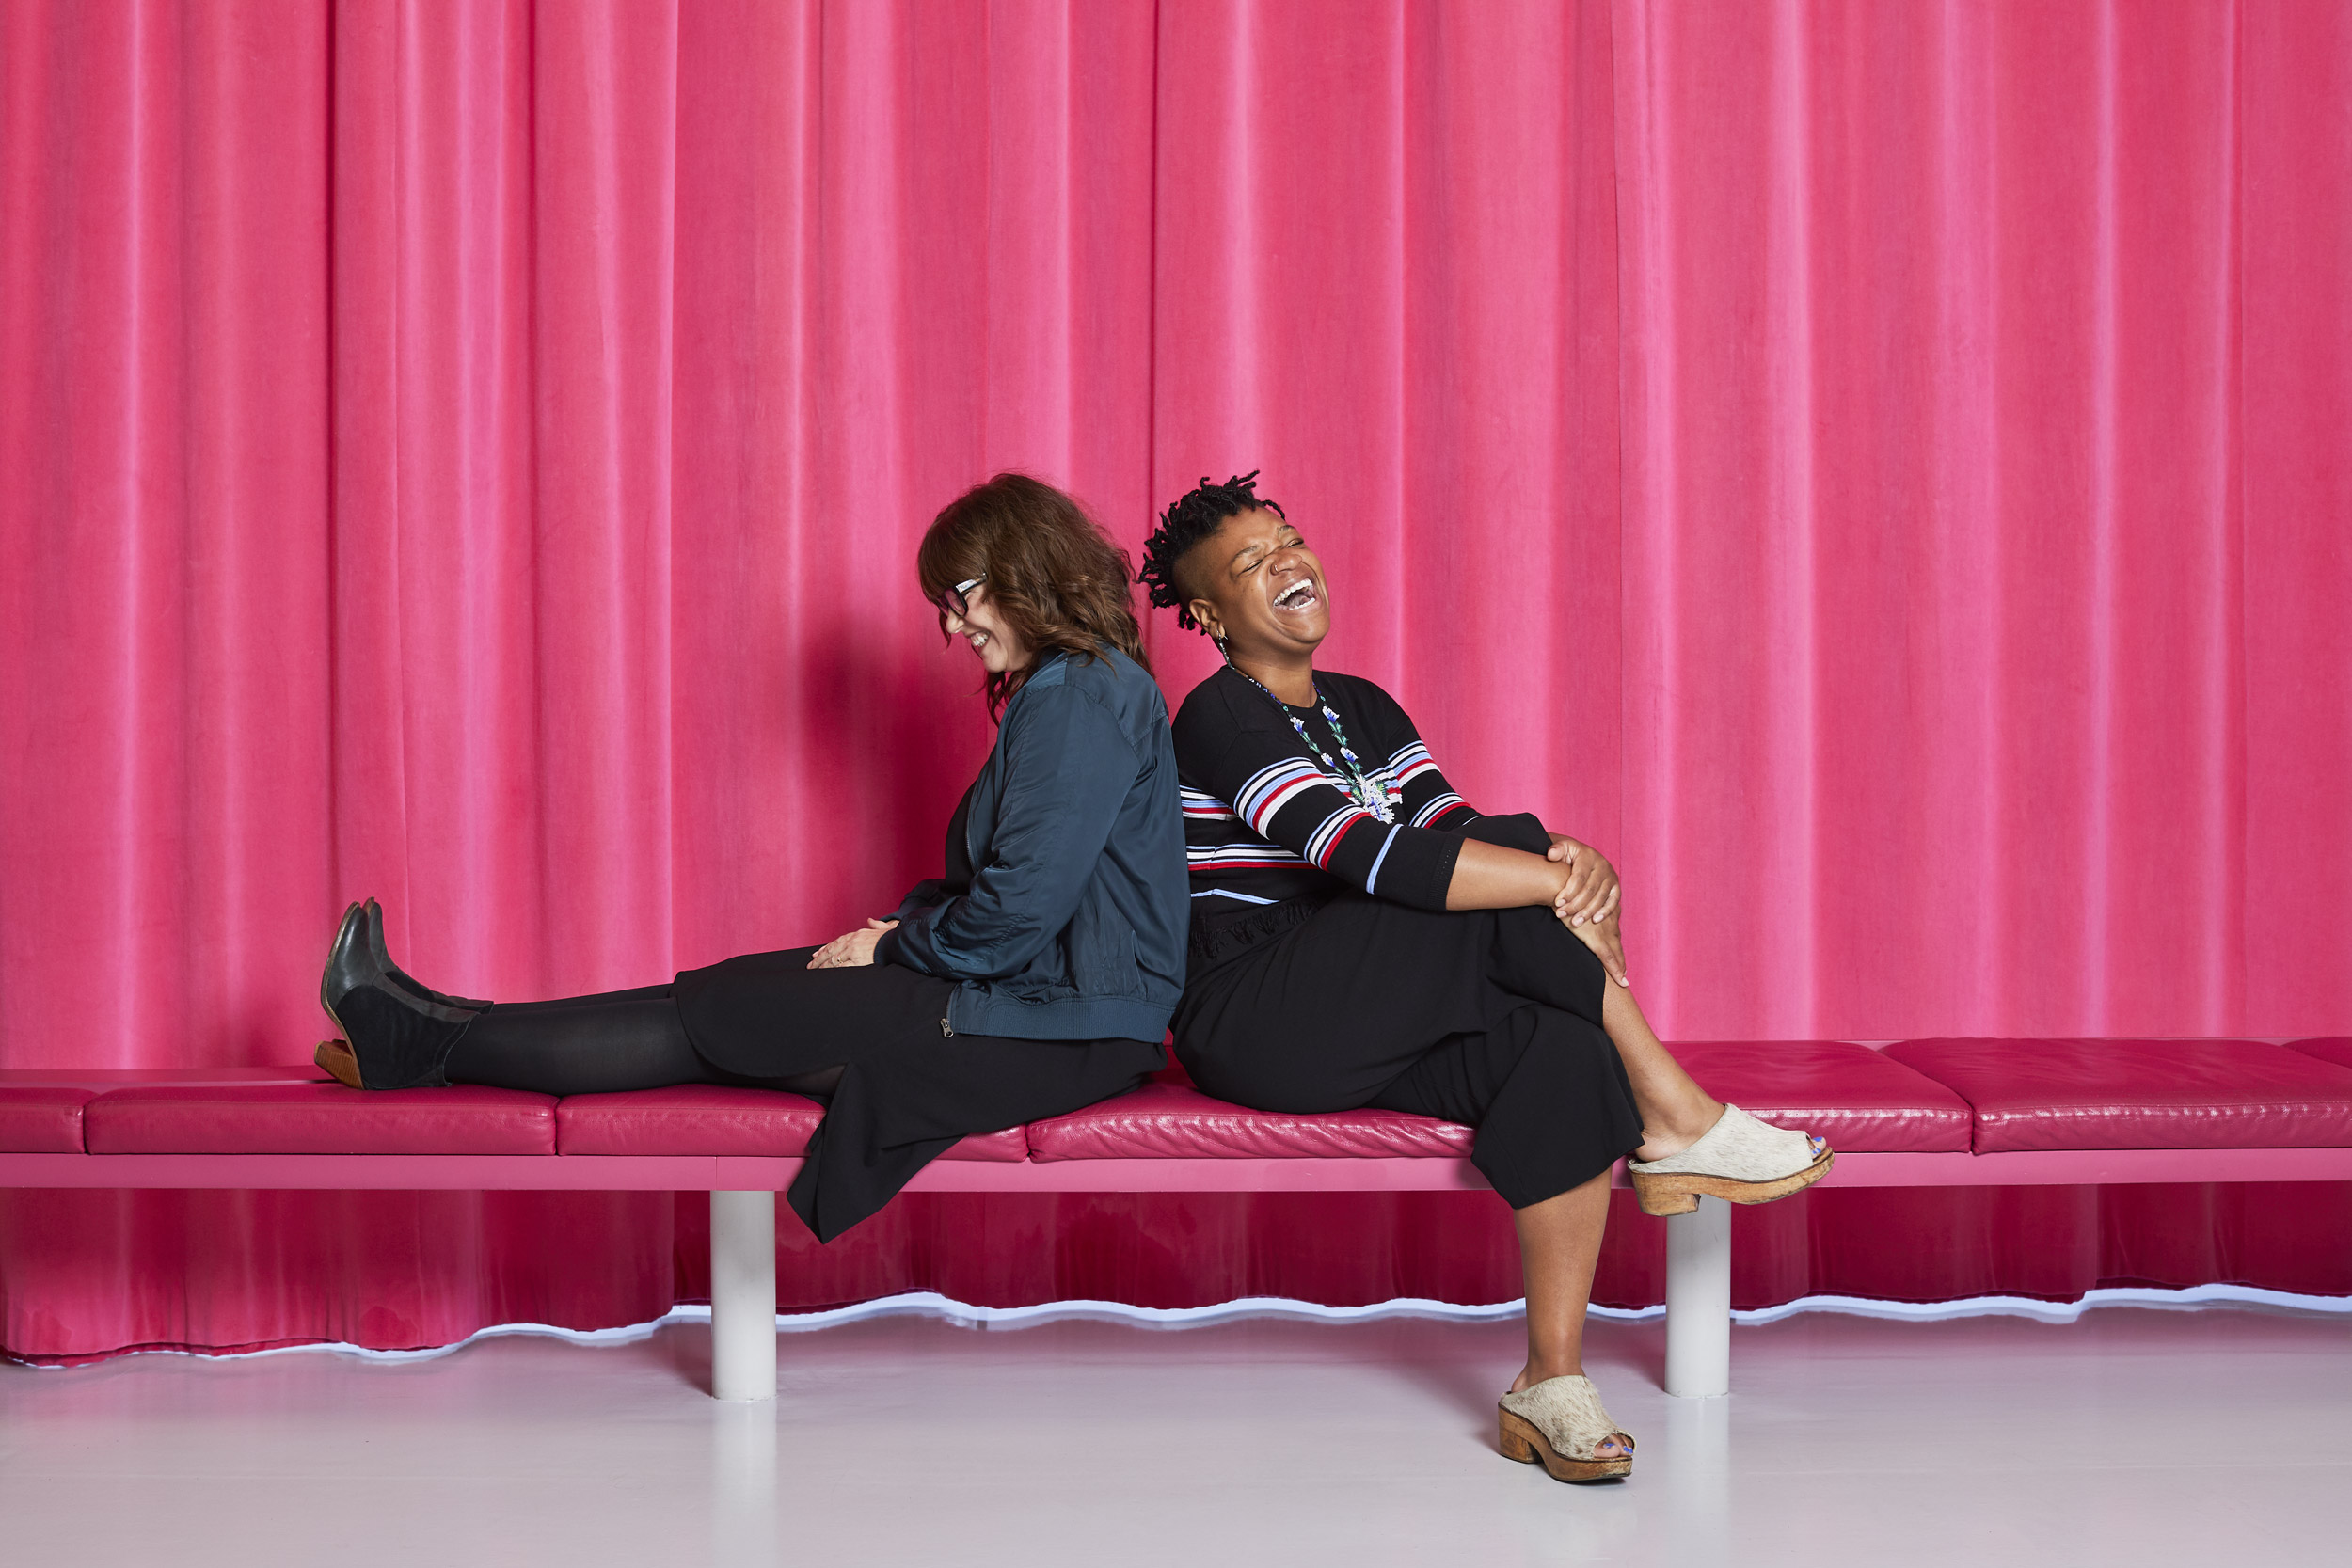 Two women sitting and smiling against a pink curtain. Kim Genevieve Los Angeles Portrait Photographer